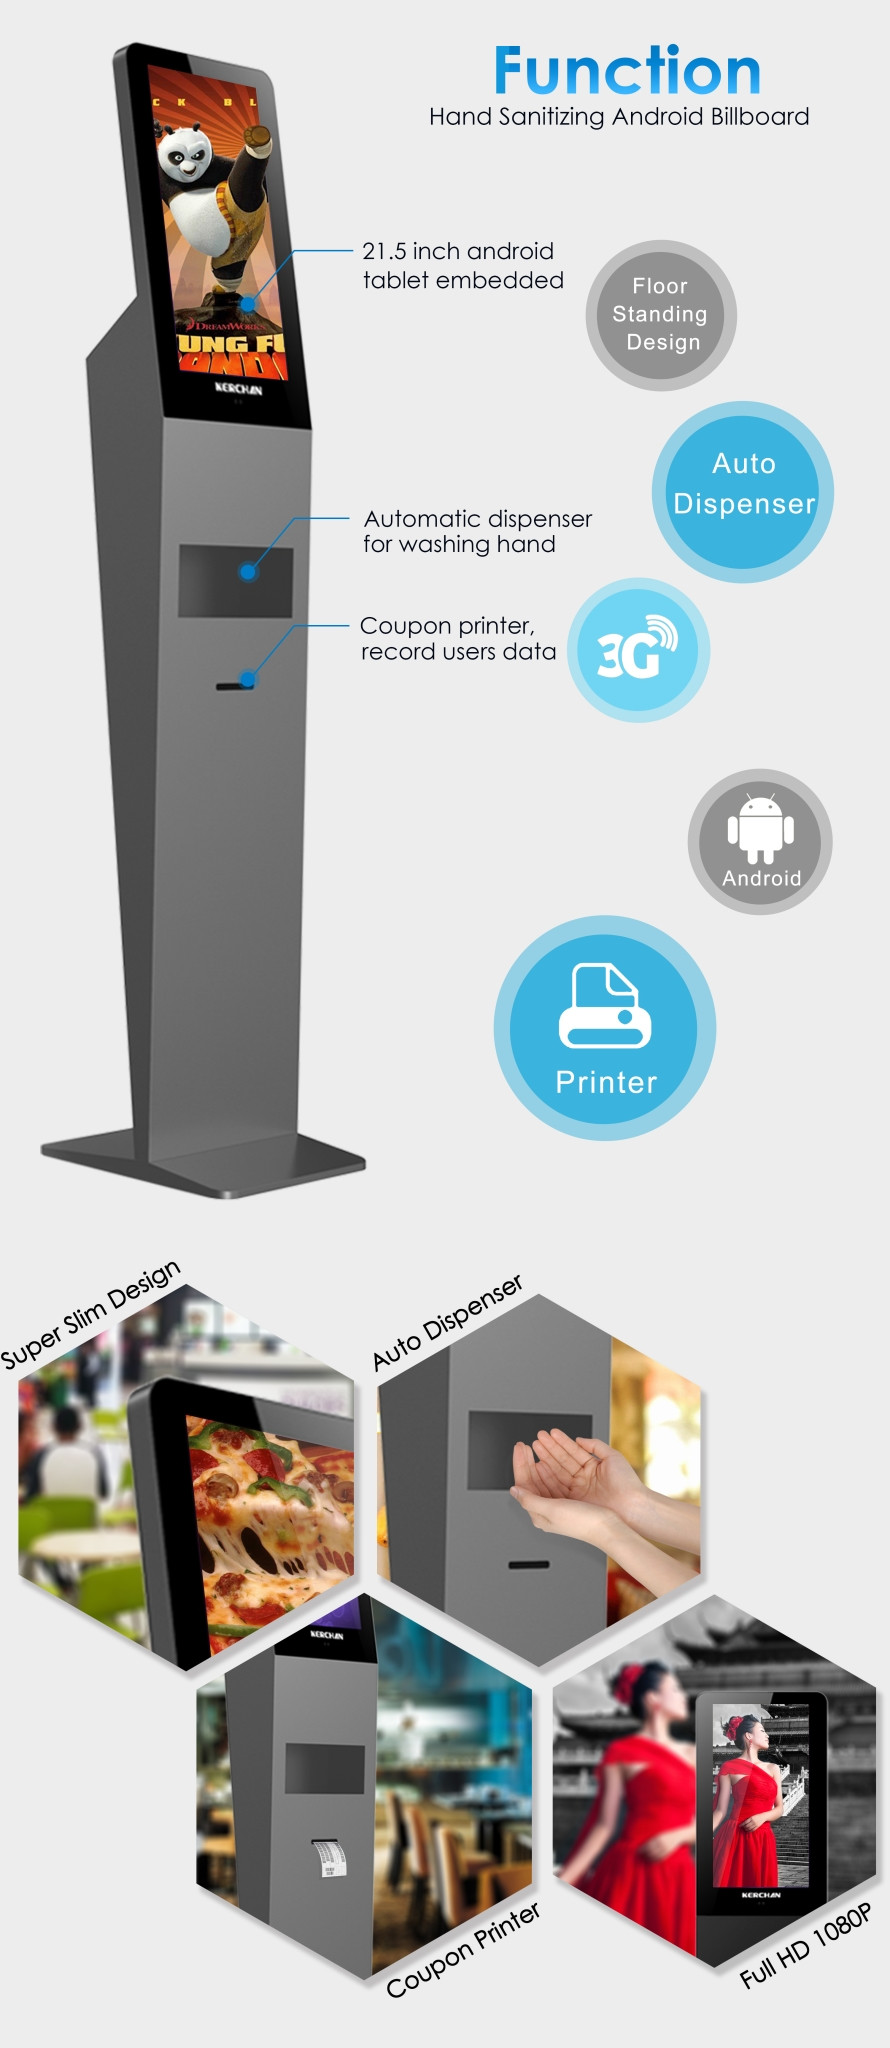 Cheap Floor standing android digital signage totem with auto hand dispenser